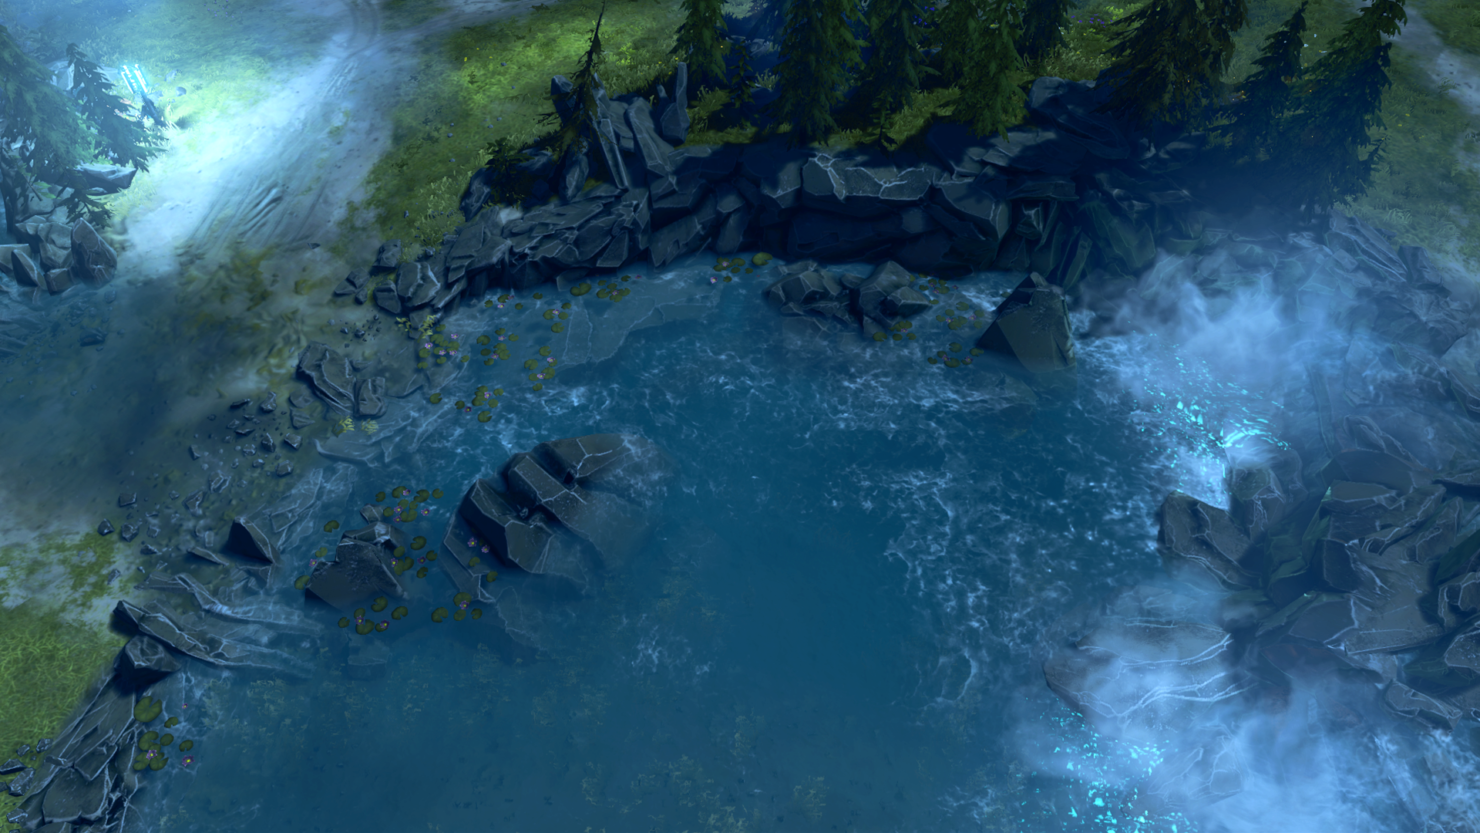 halo-wars-2-multiplayer-watering-hole-2